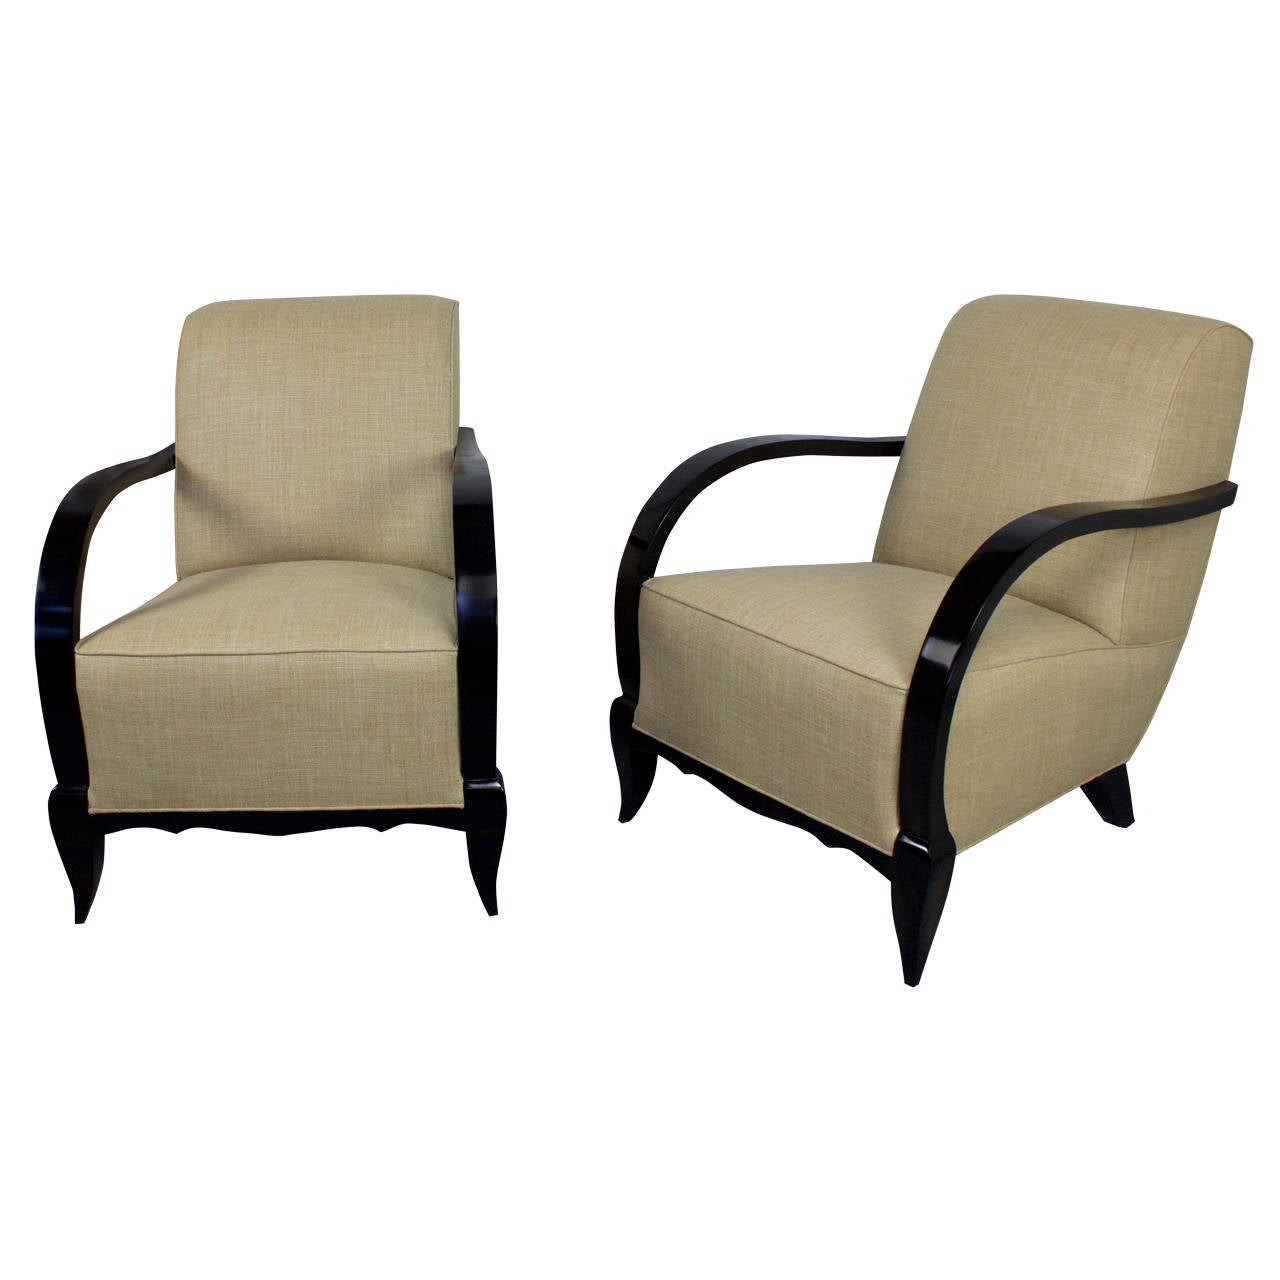 Pair of French Armchairs, 1940s